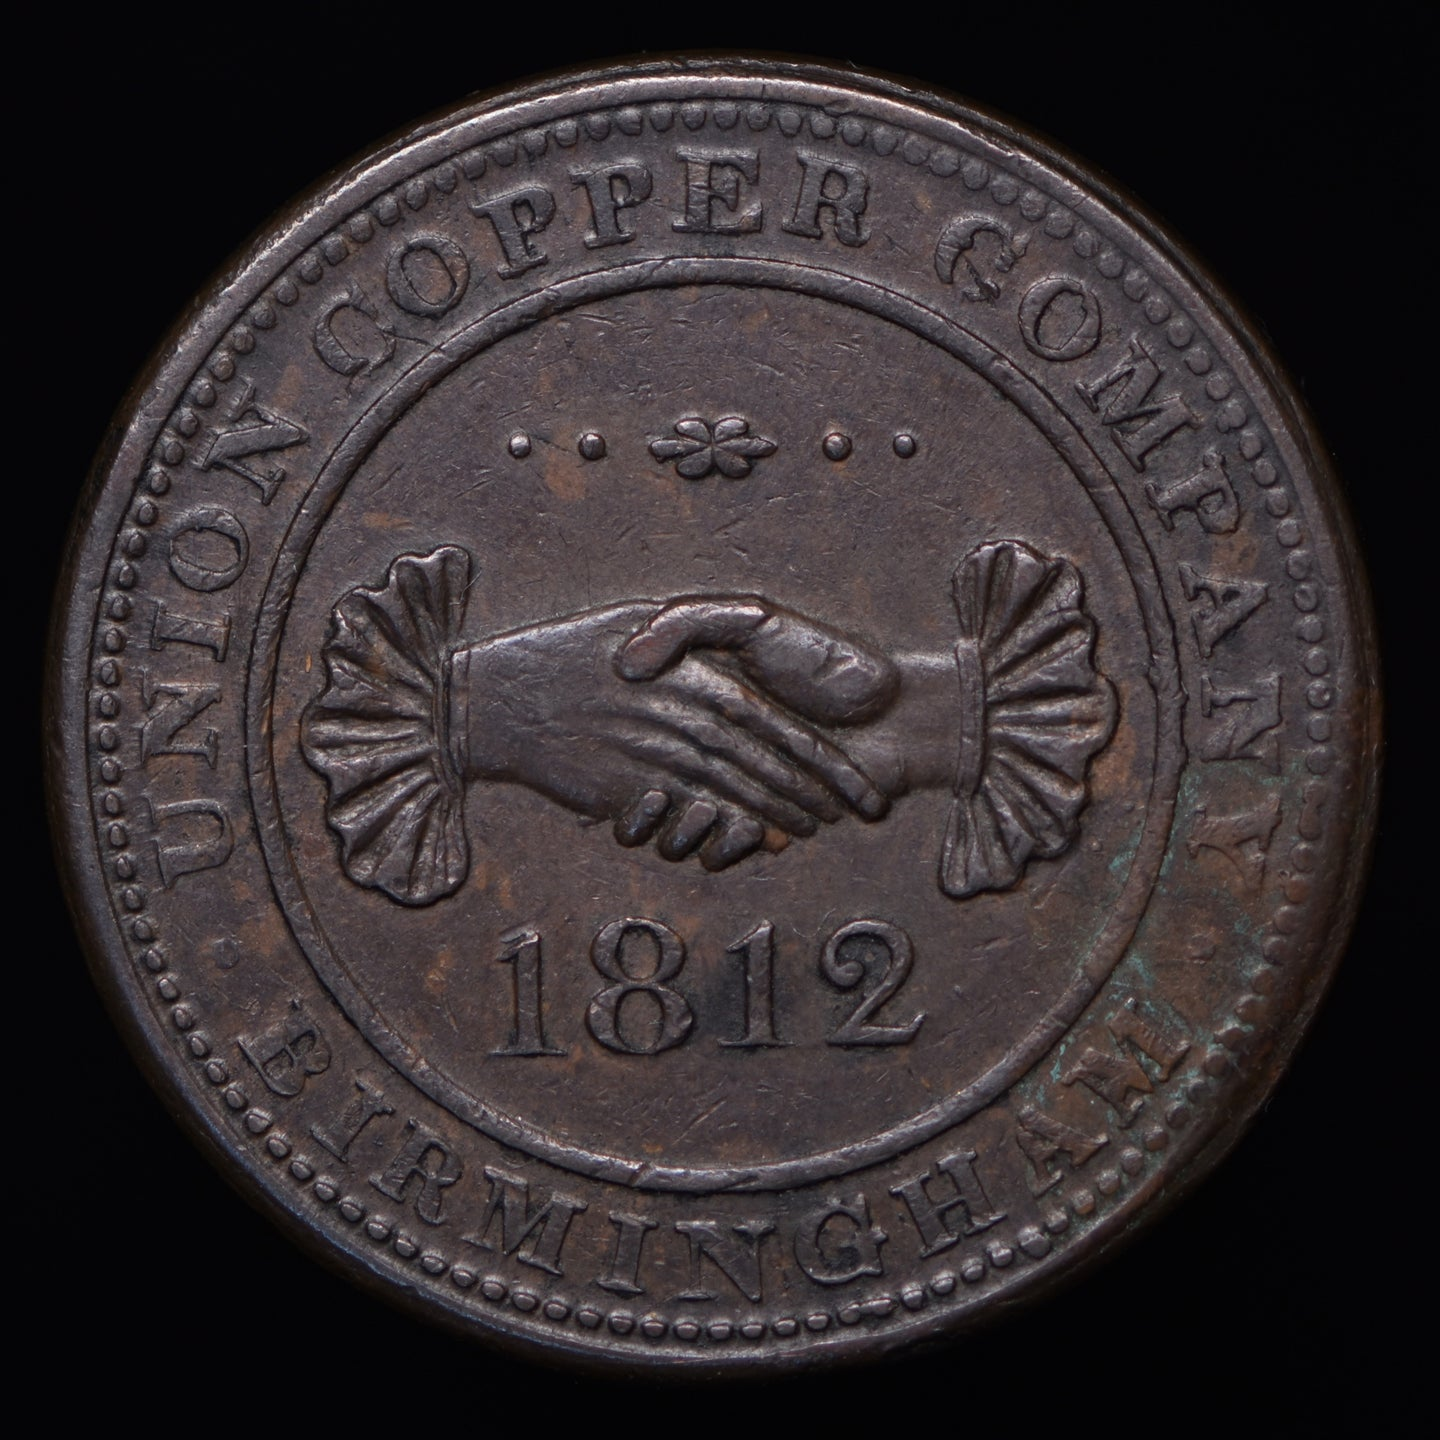 Union Copper Company W. 319a